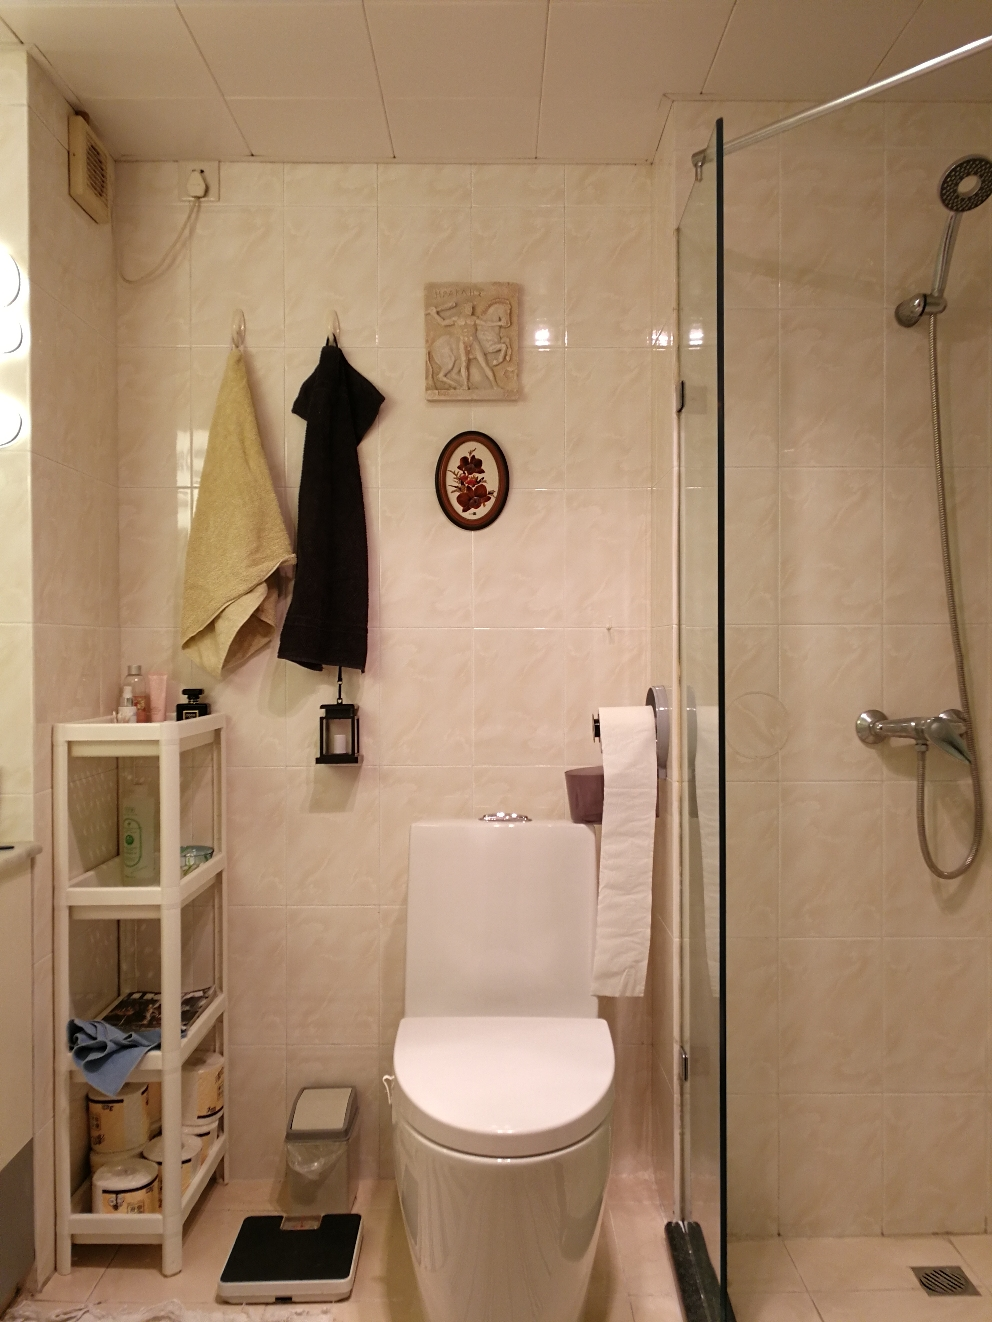 Small bathroom B with shower